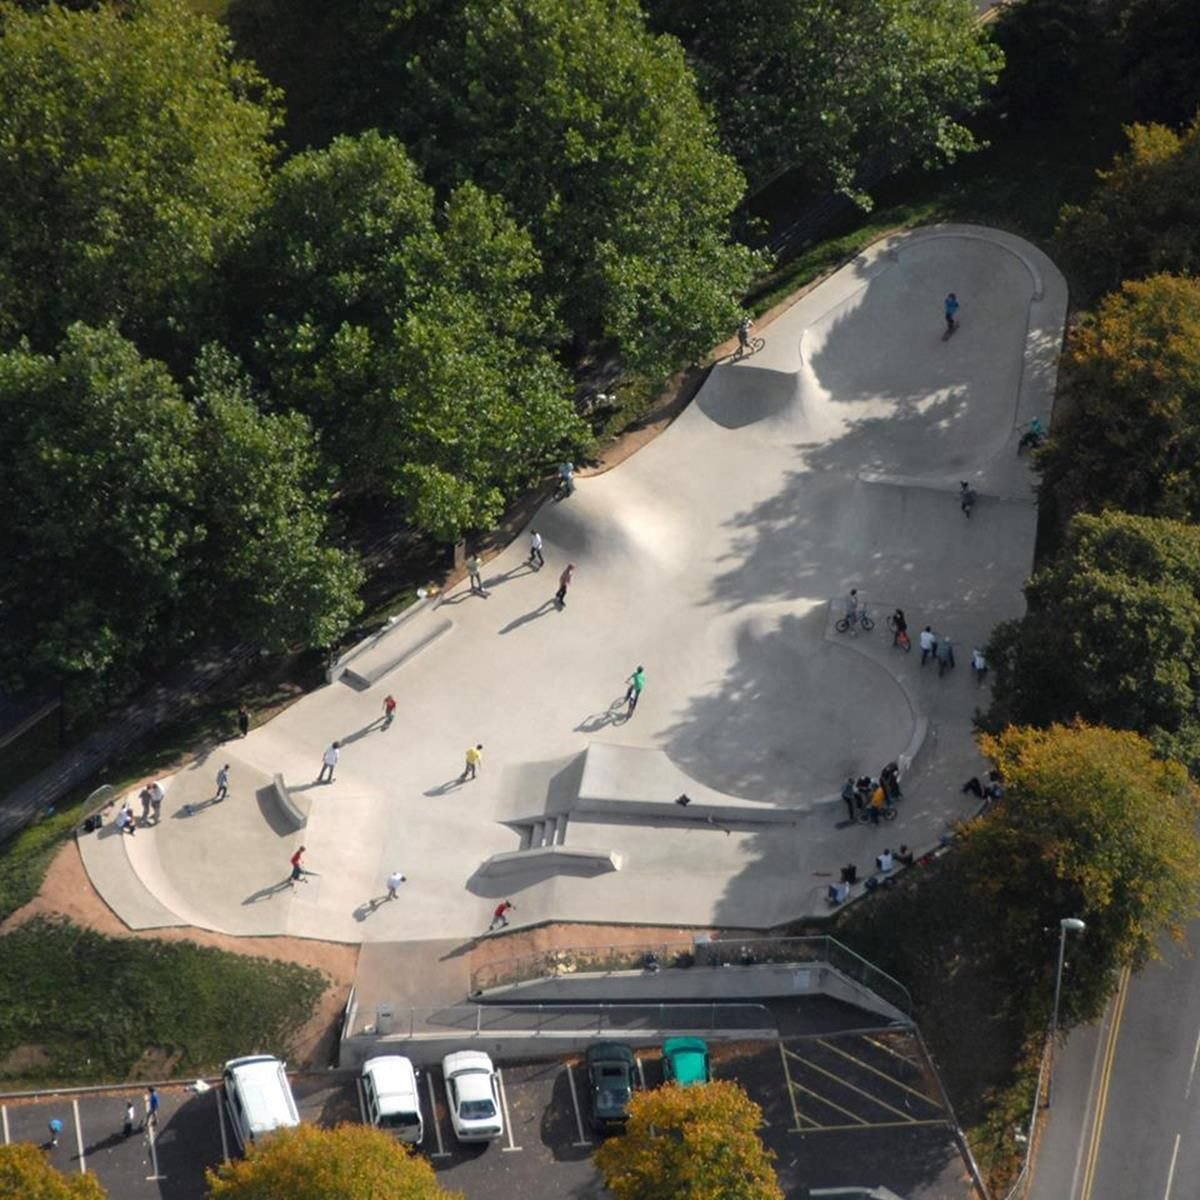 Check Out Dorchester Skatepark The State Of The Art Concrete Skatepark Is Great Fun On A Bmx Scooter And Inline Skates A Skate Park Dorchester Urban Planning